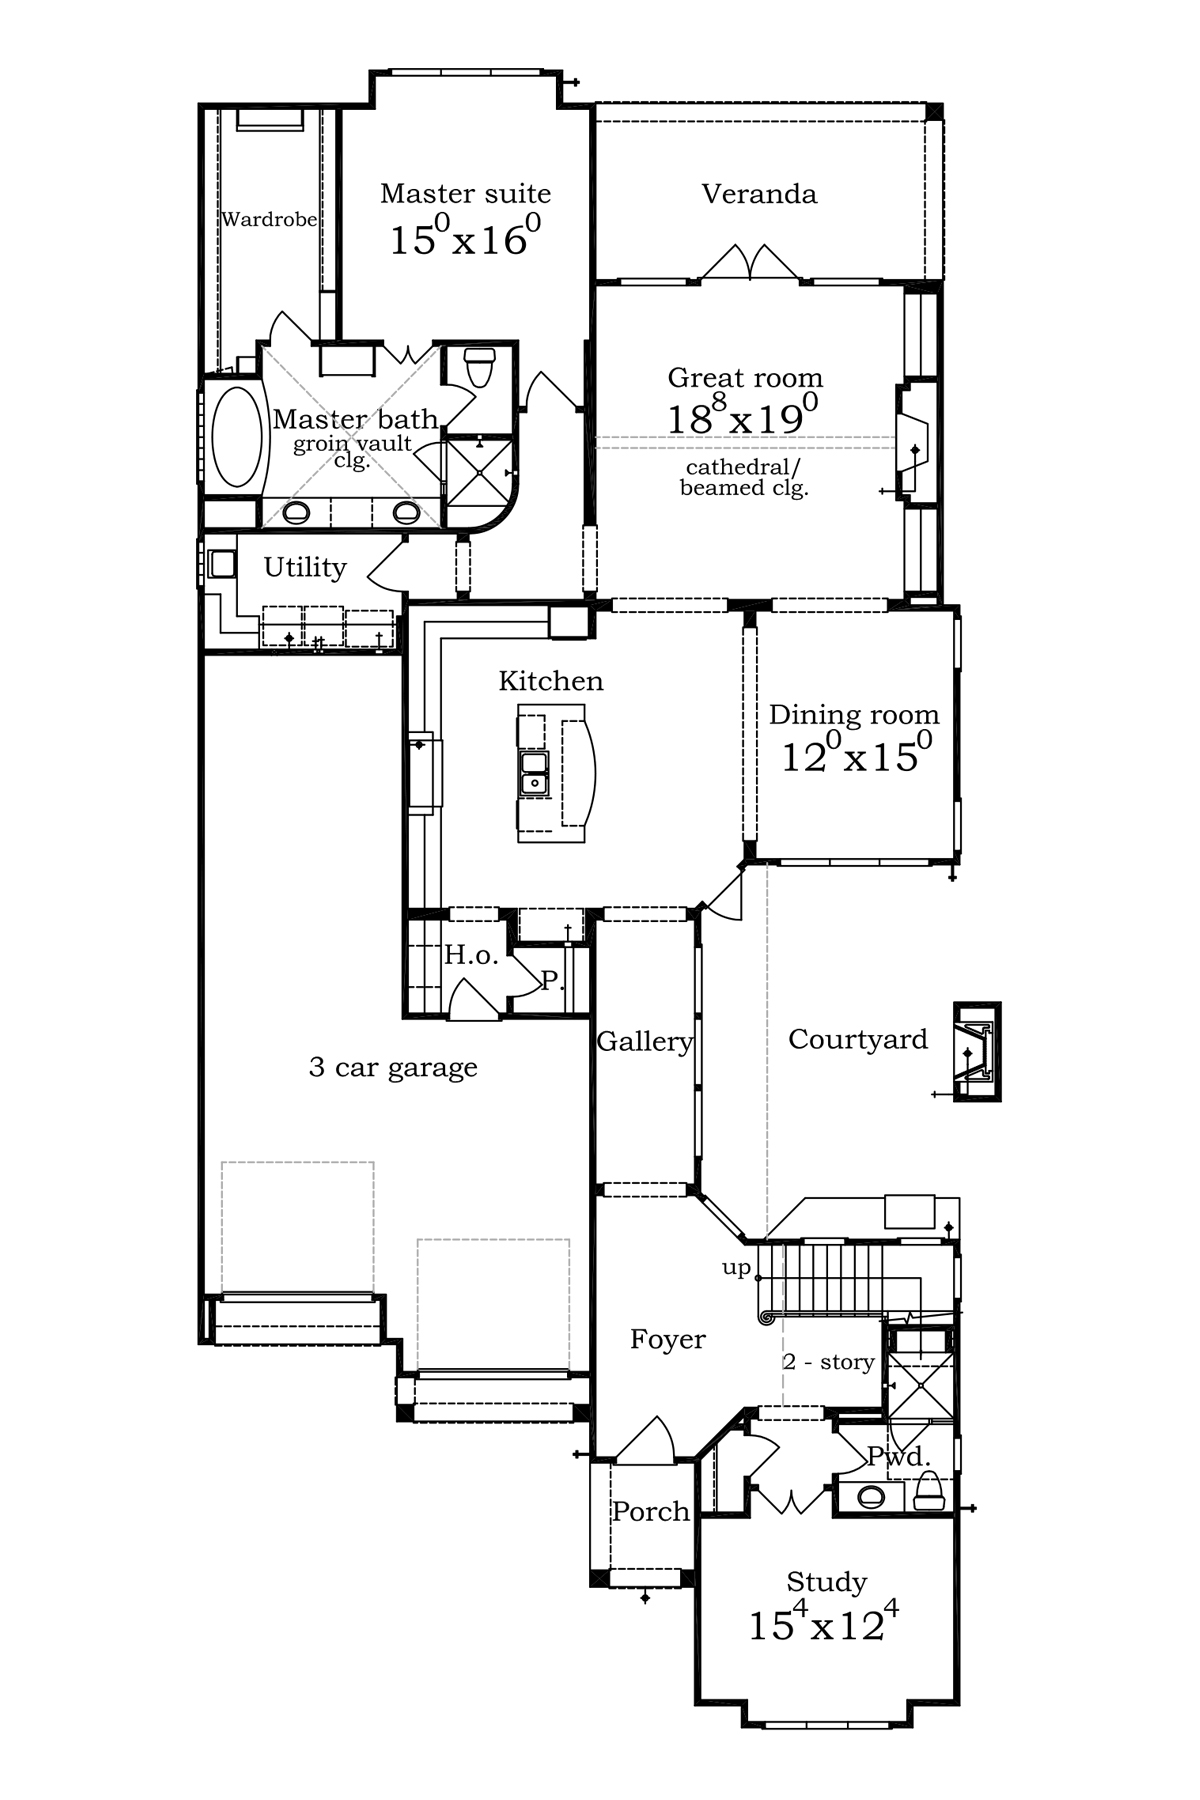 New csch homes available in lake pointe sims luxury for Tandem garage house plans